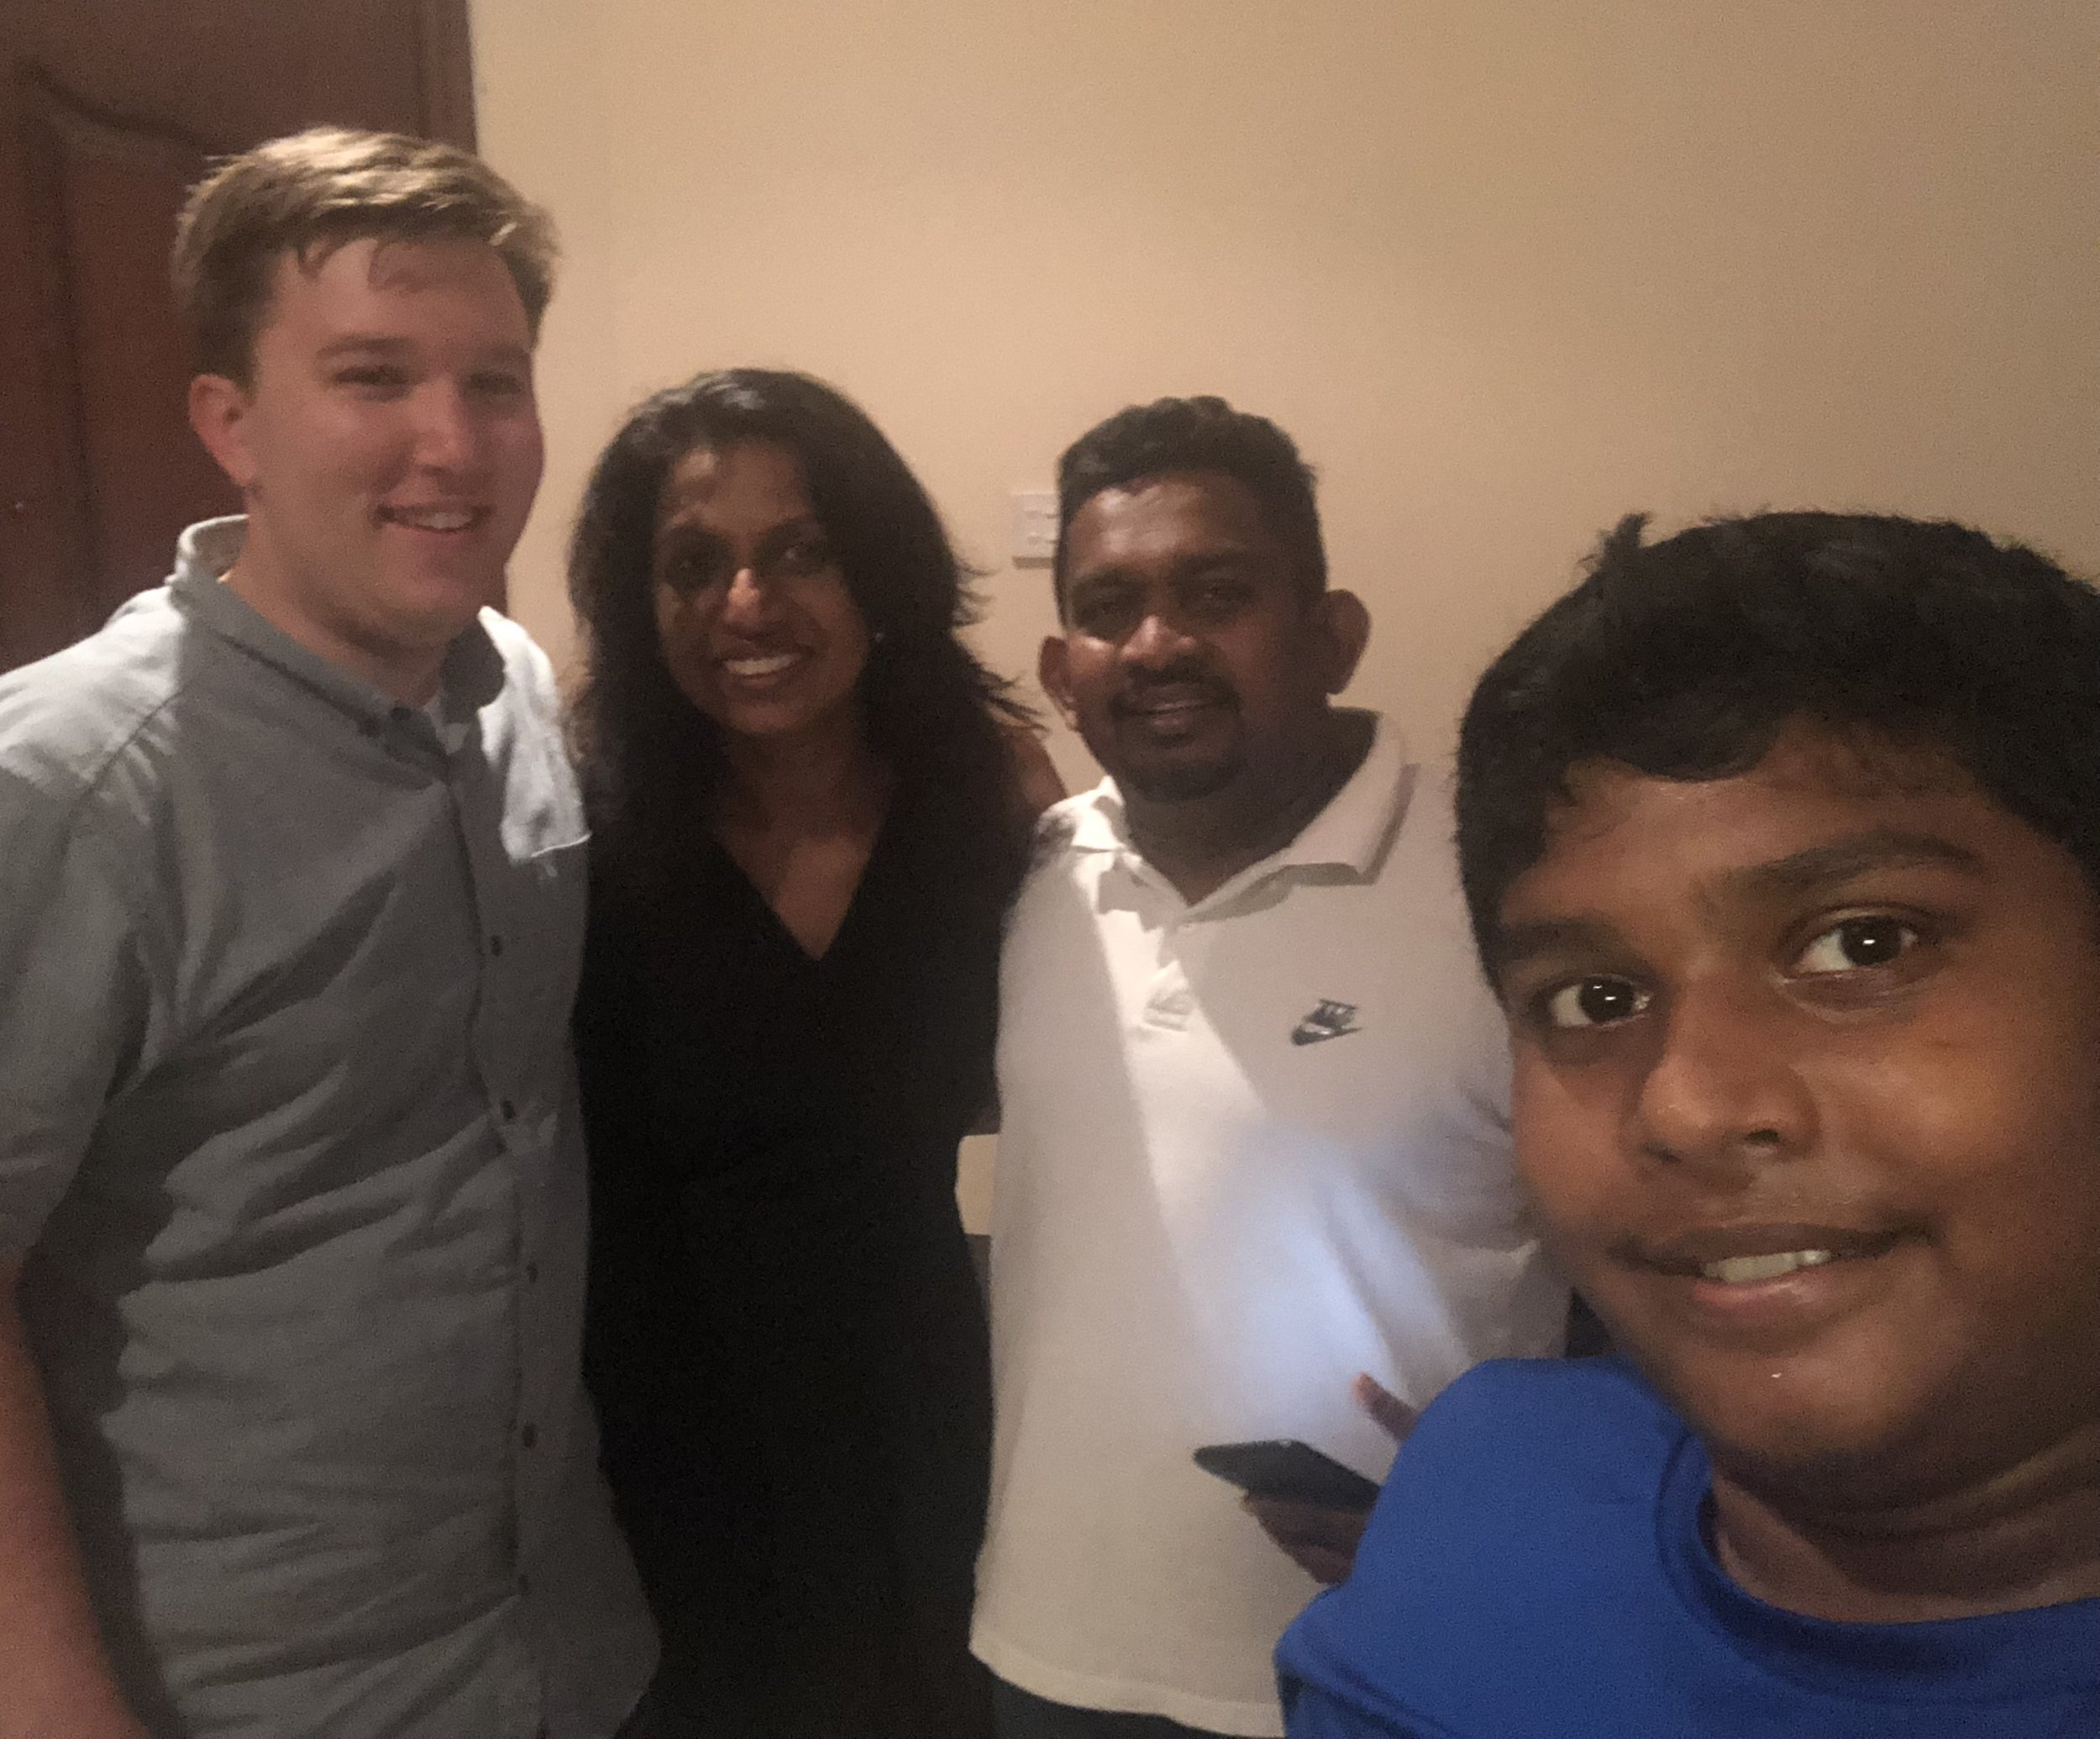 A quick selfie by Nilwala and Sanjeewa's son, taken after our walk on the beach. I feel pretty tall around most Sri Lankans.